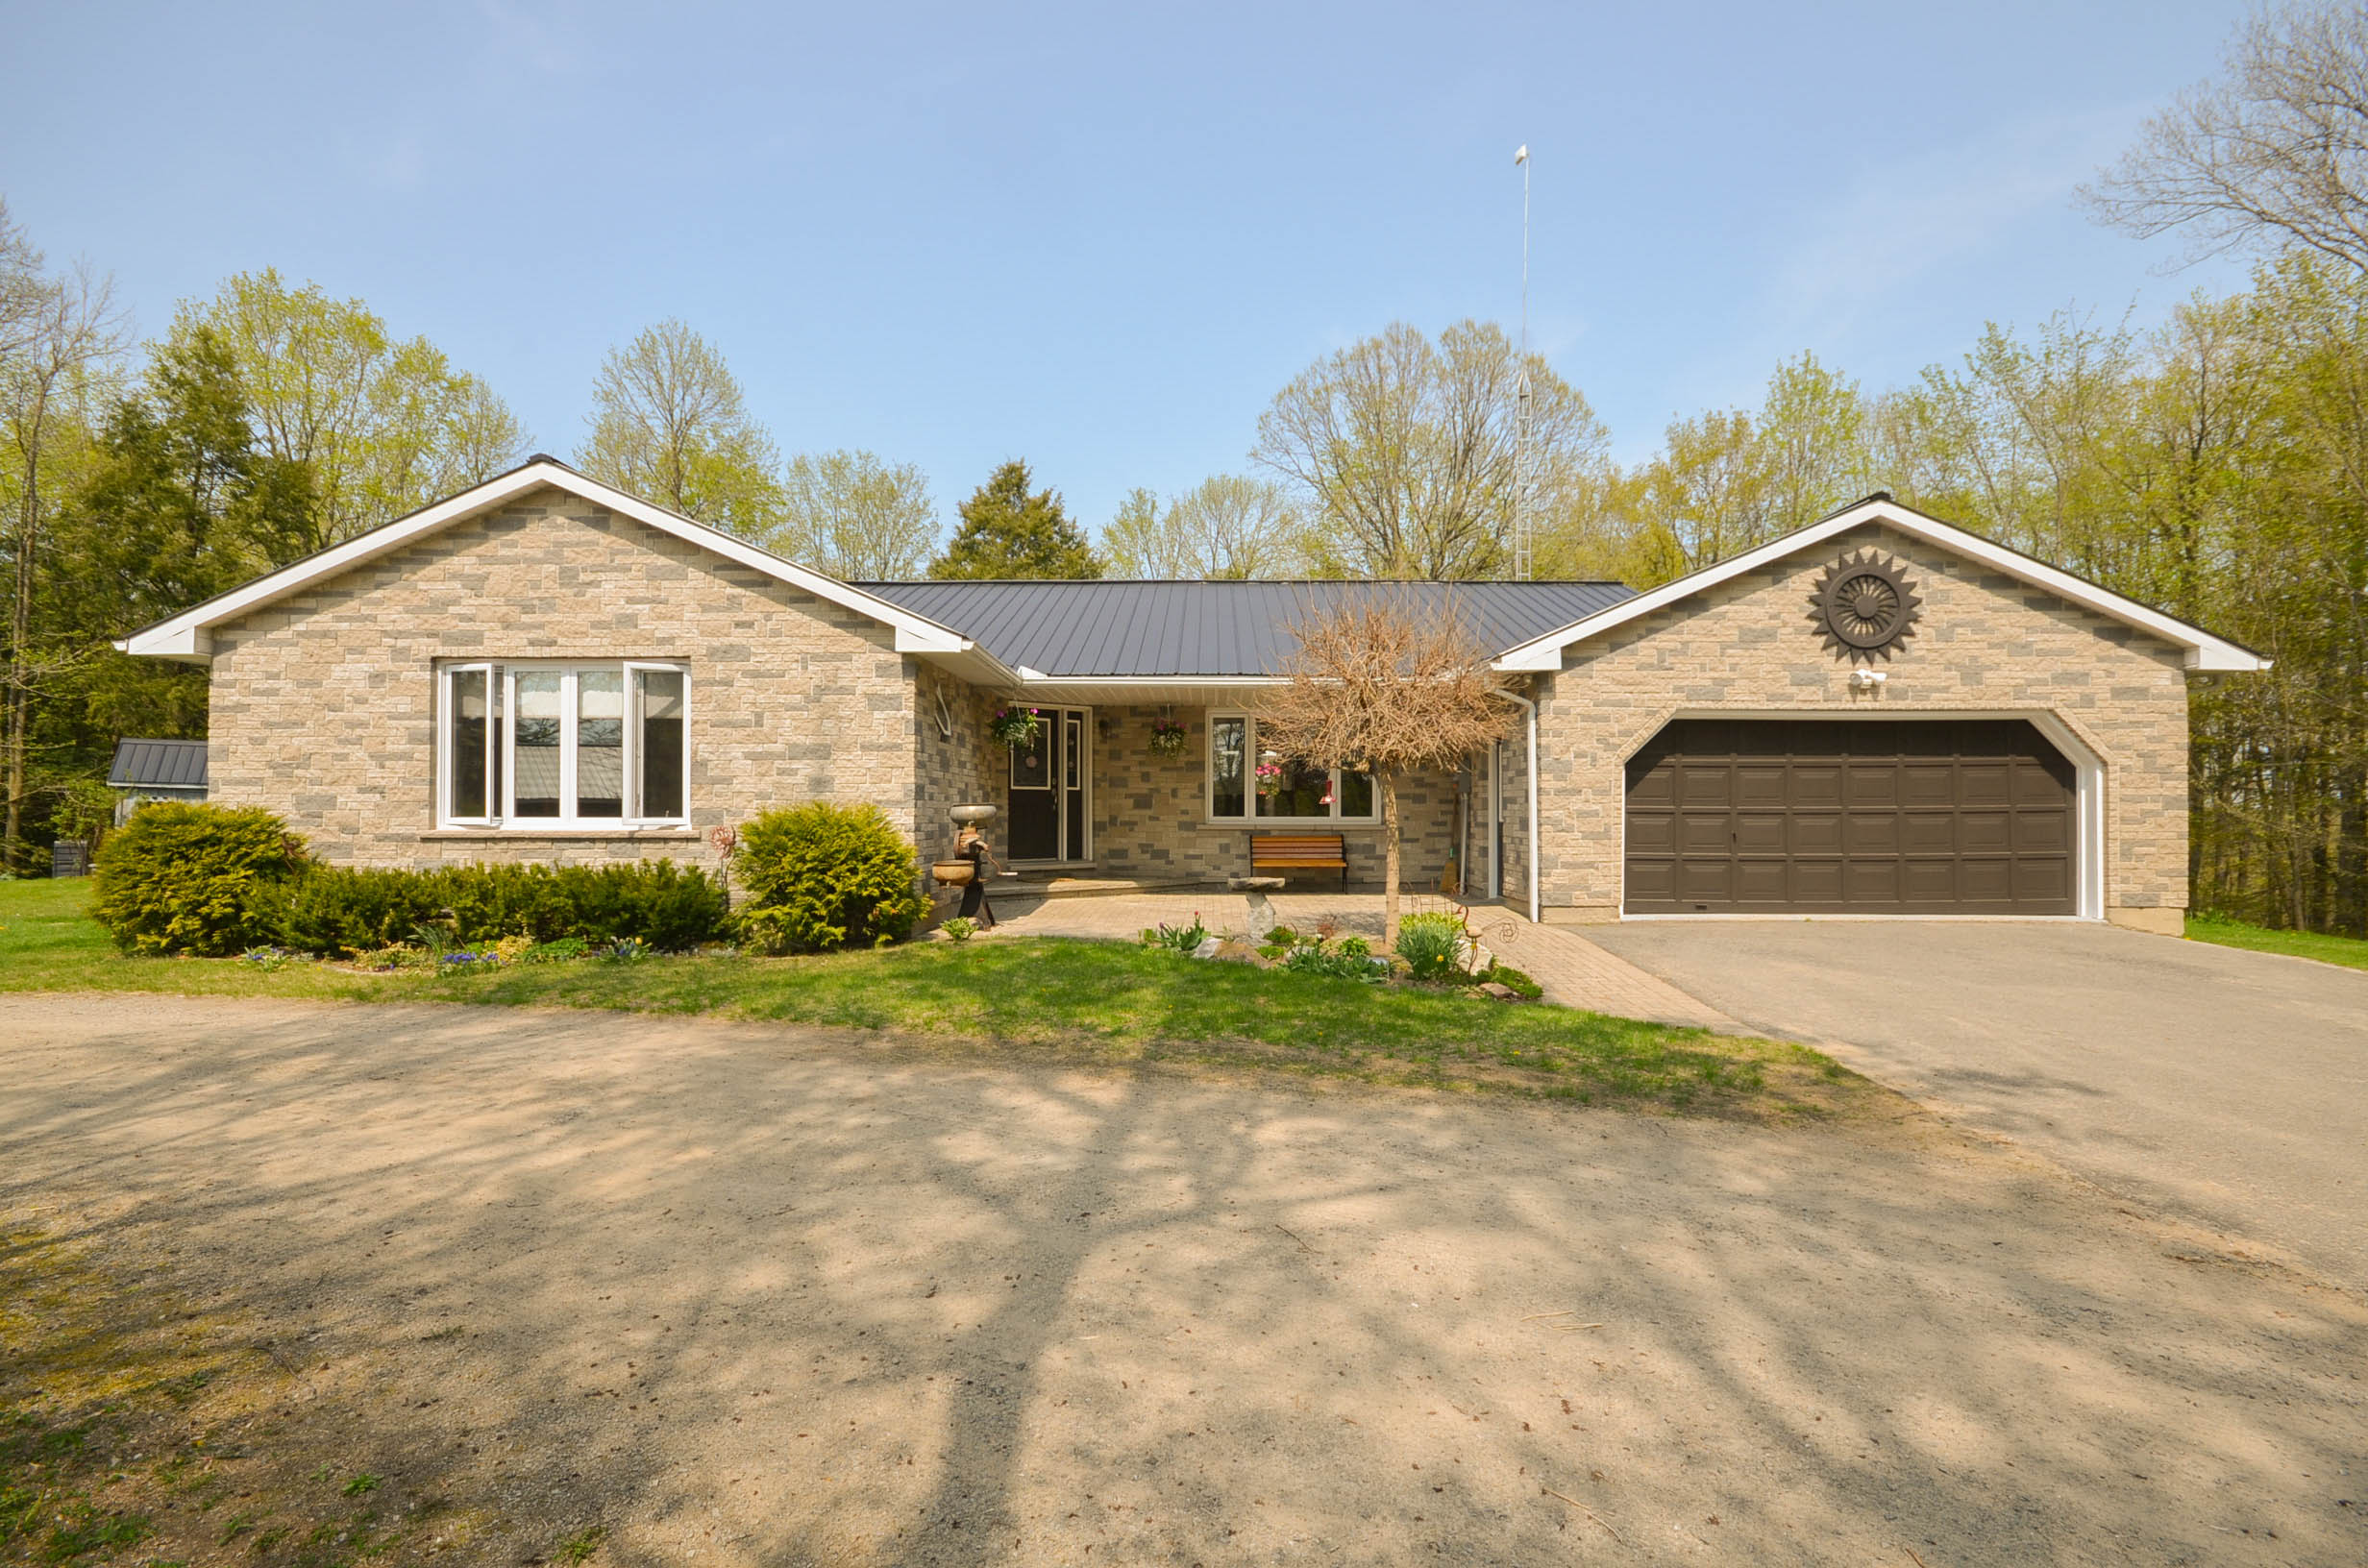 4251 County Rd 18 Augusta Ontario Property Details